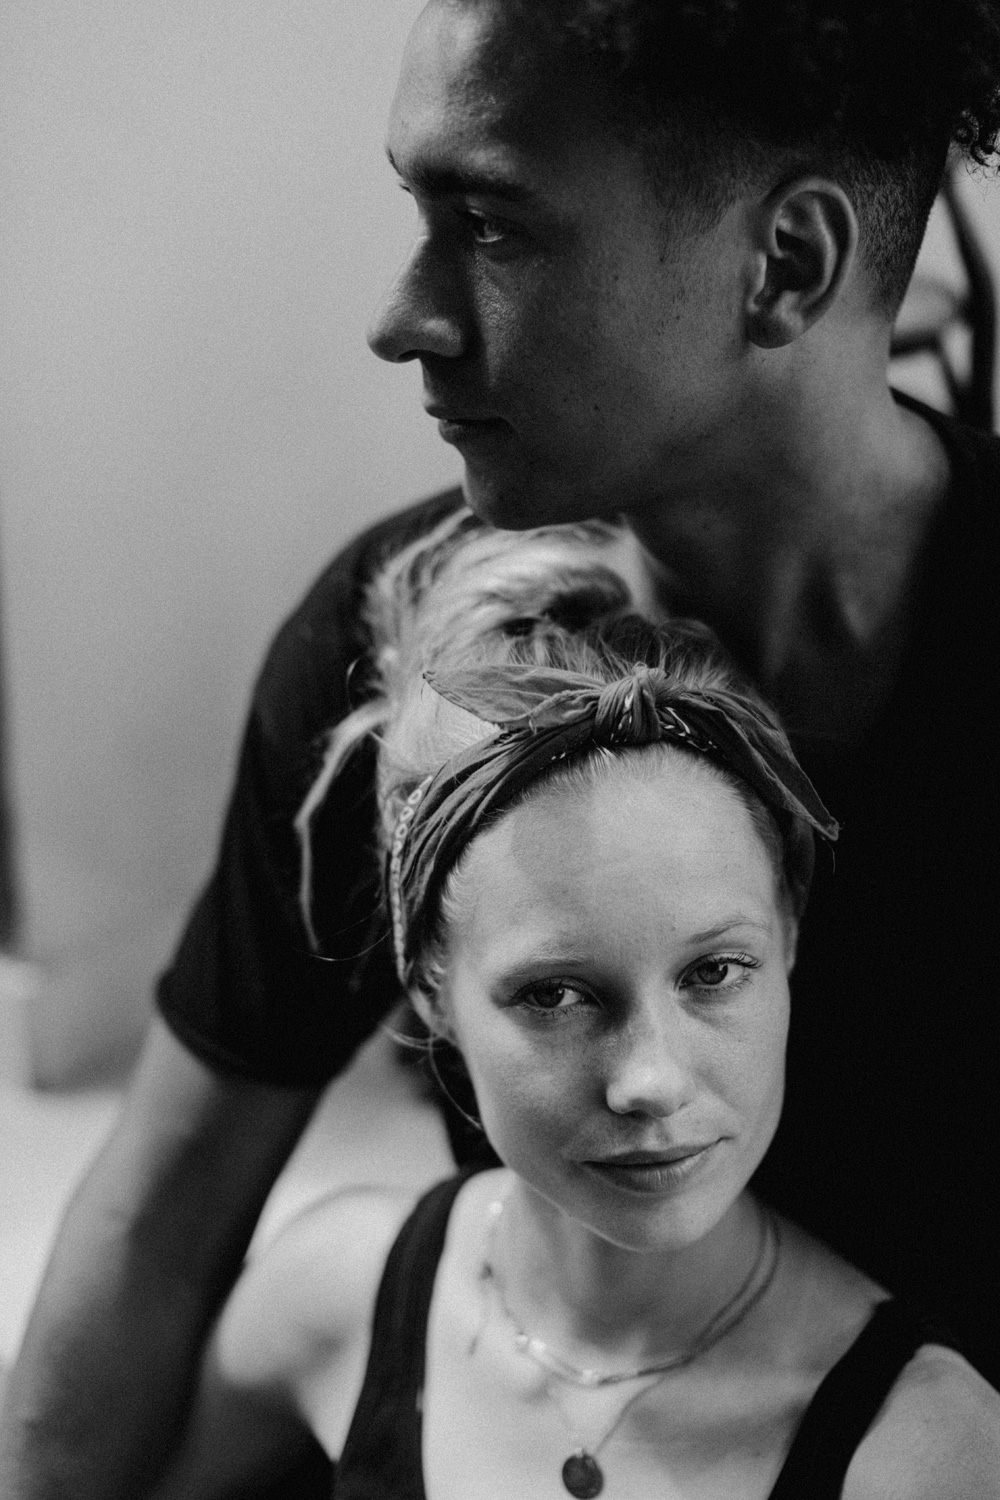 Black and white couple with girl facing the camera and hairband